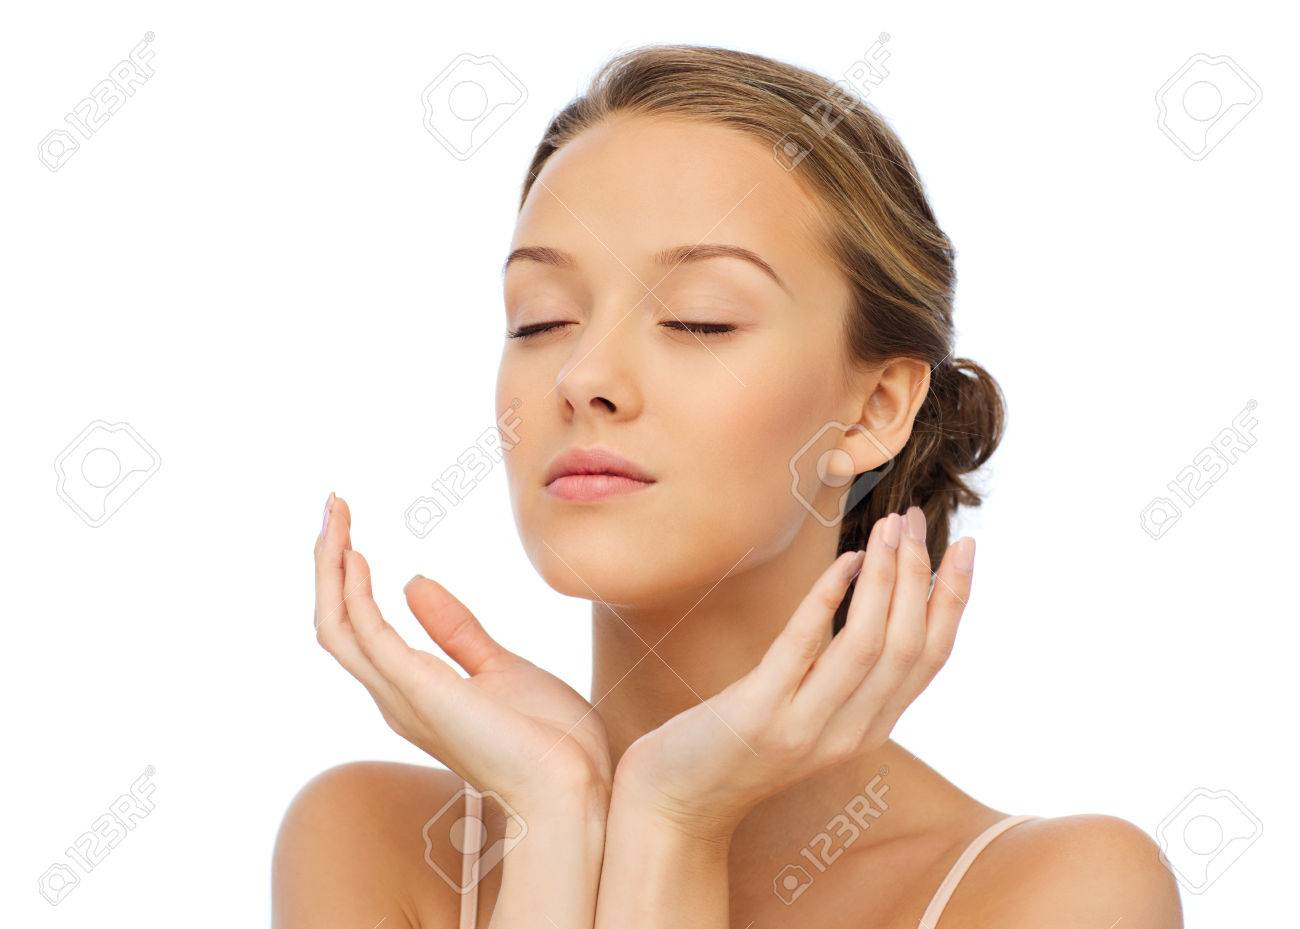 beauty, people, skincare and health concept - young woman face and hands - 51334613